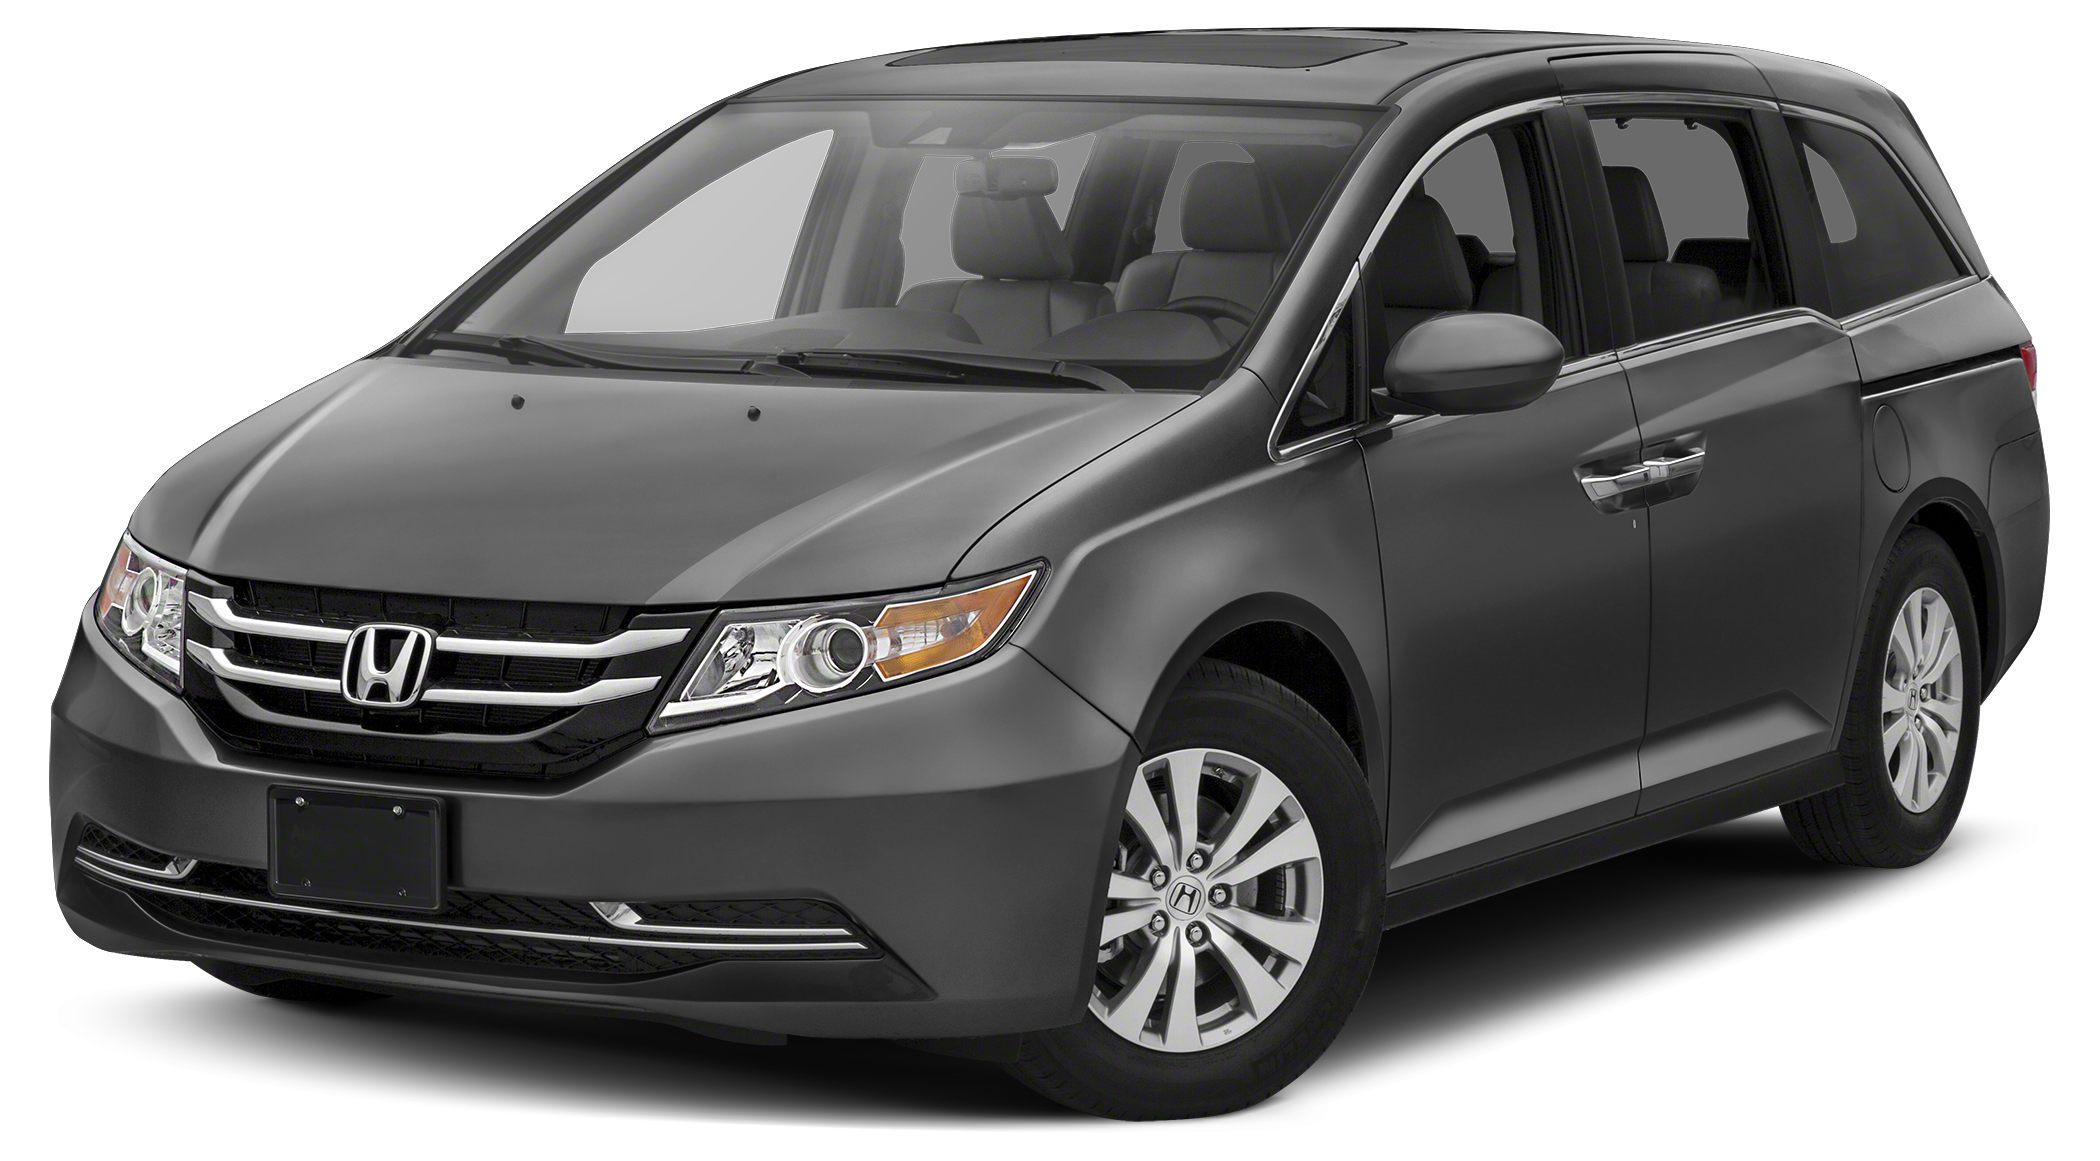 chrysler pacifica touring l plus vs honda odyssey ex l vs toyota sienna limited 7 passenger. Black Bedroom Furniture Sets. Home Design Ideas